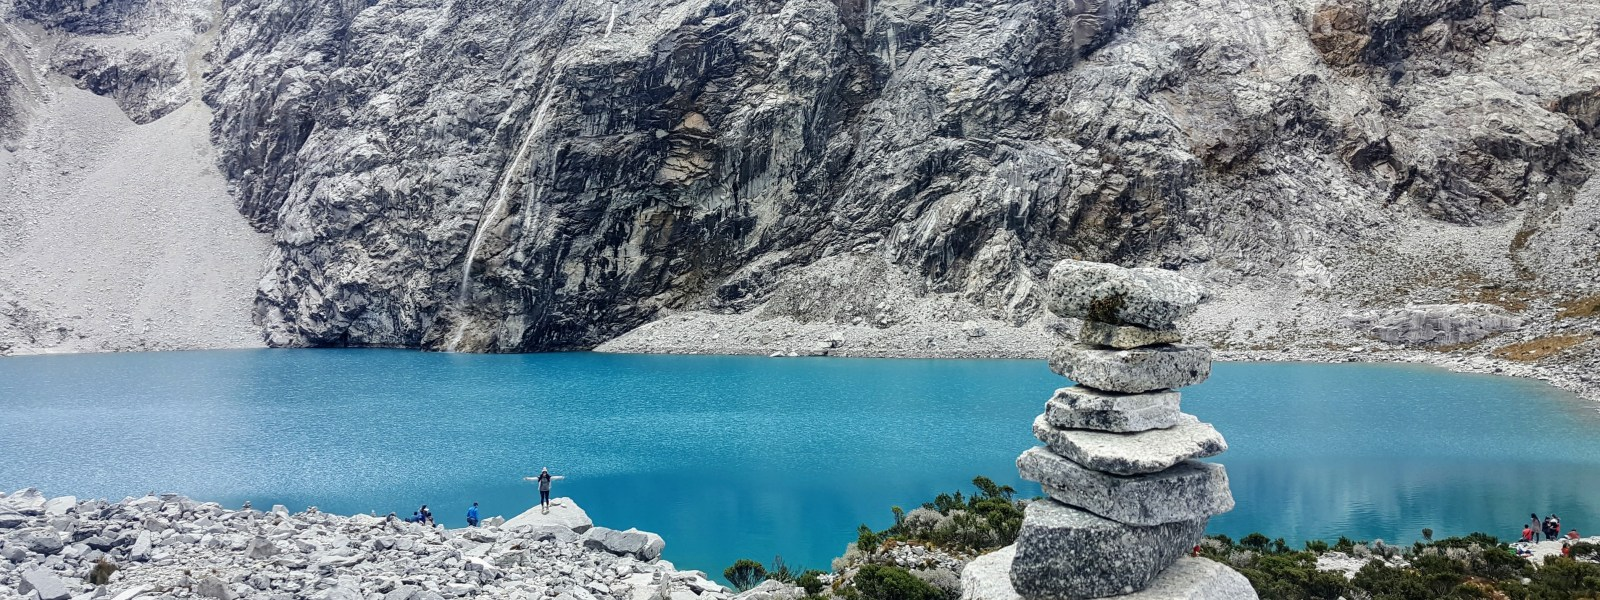 Hiking in Huaraz – Northern Peru